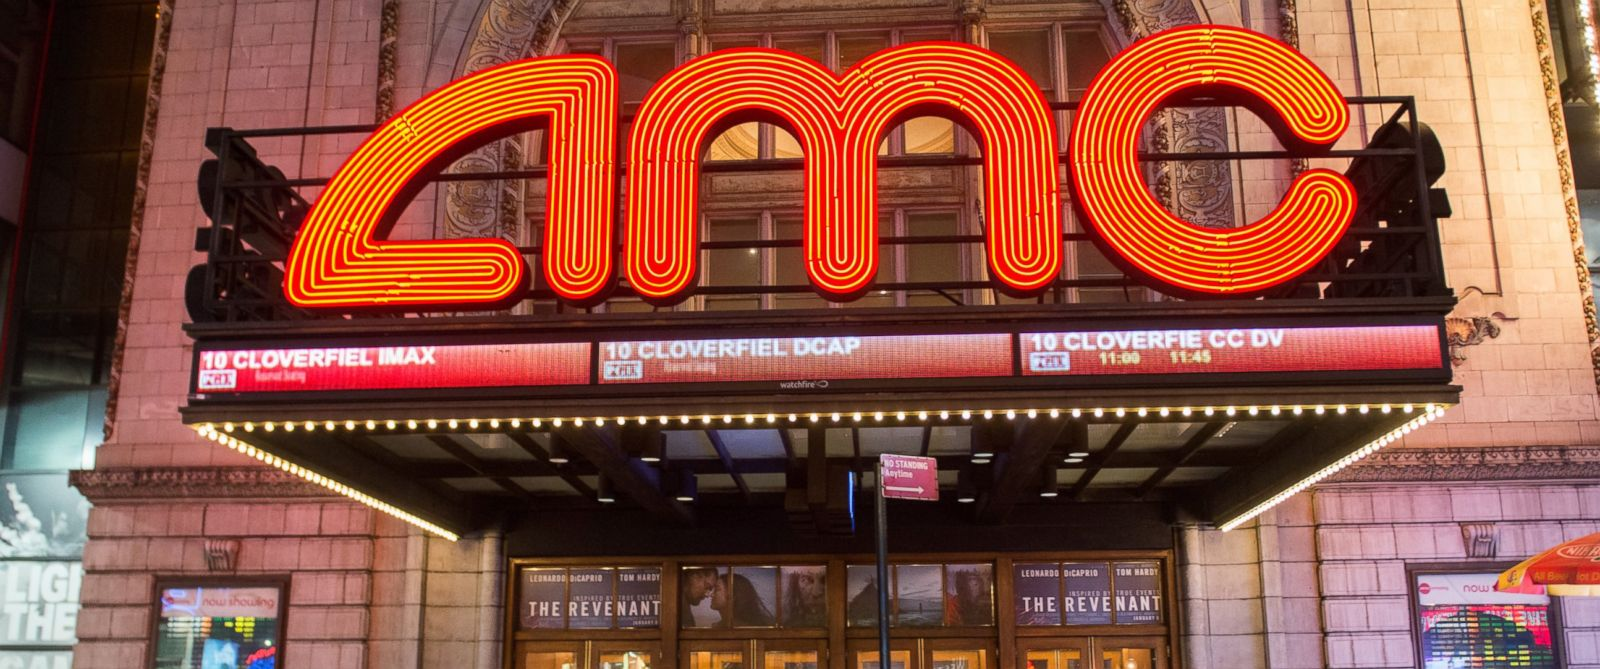 Amc Theatres Enters The Streaming Market With On Demand